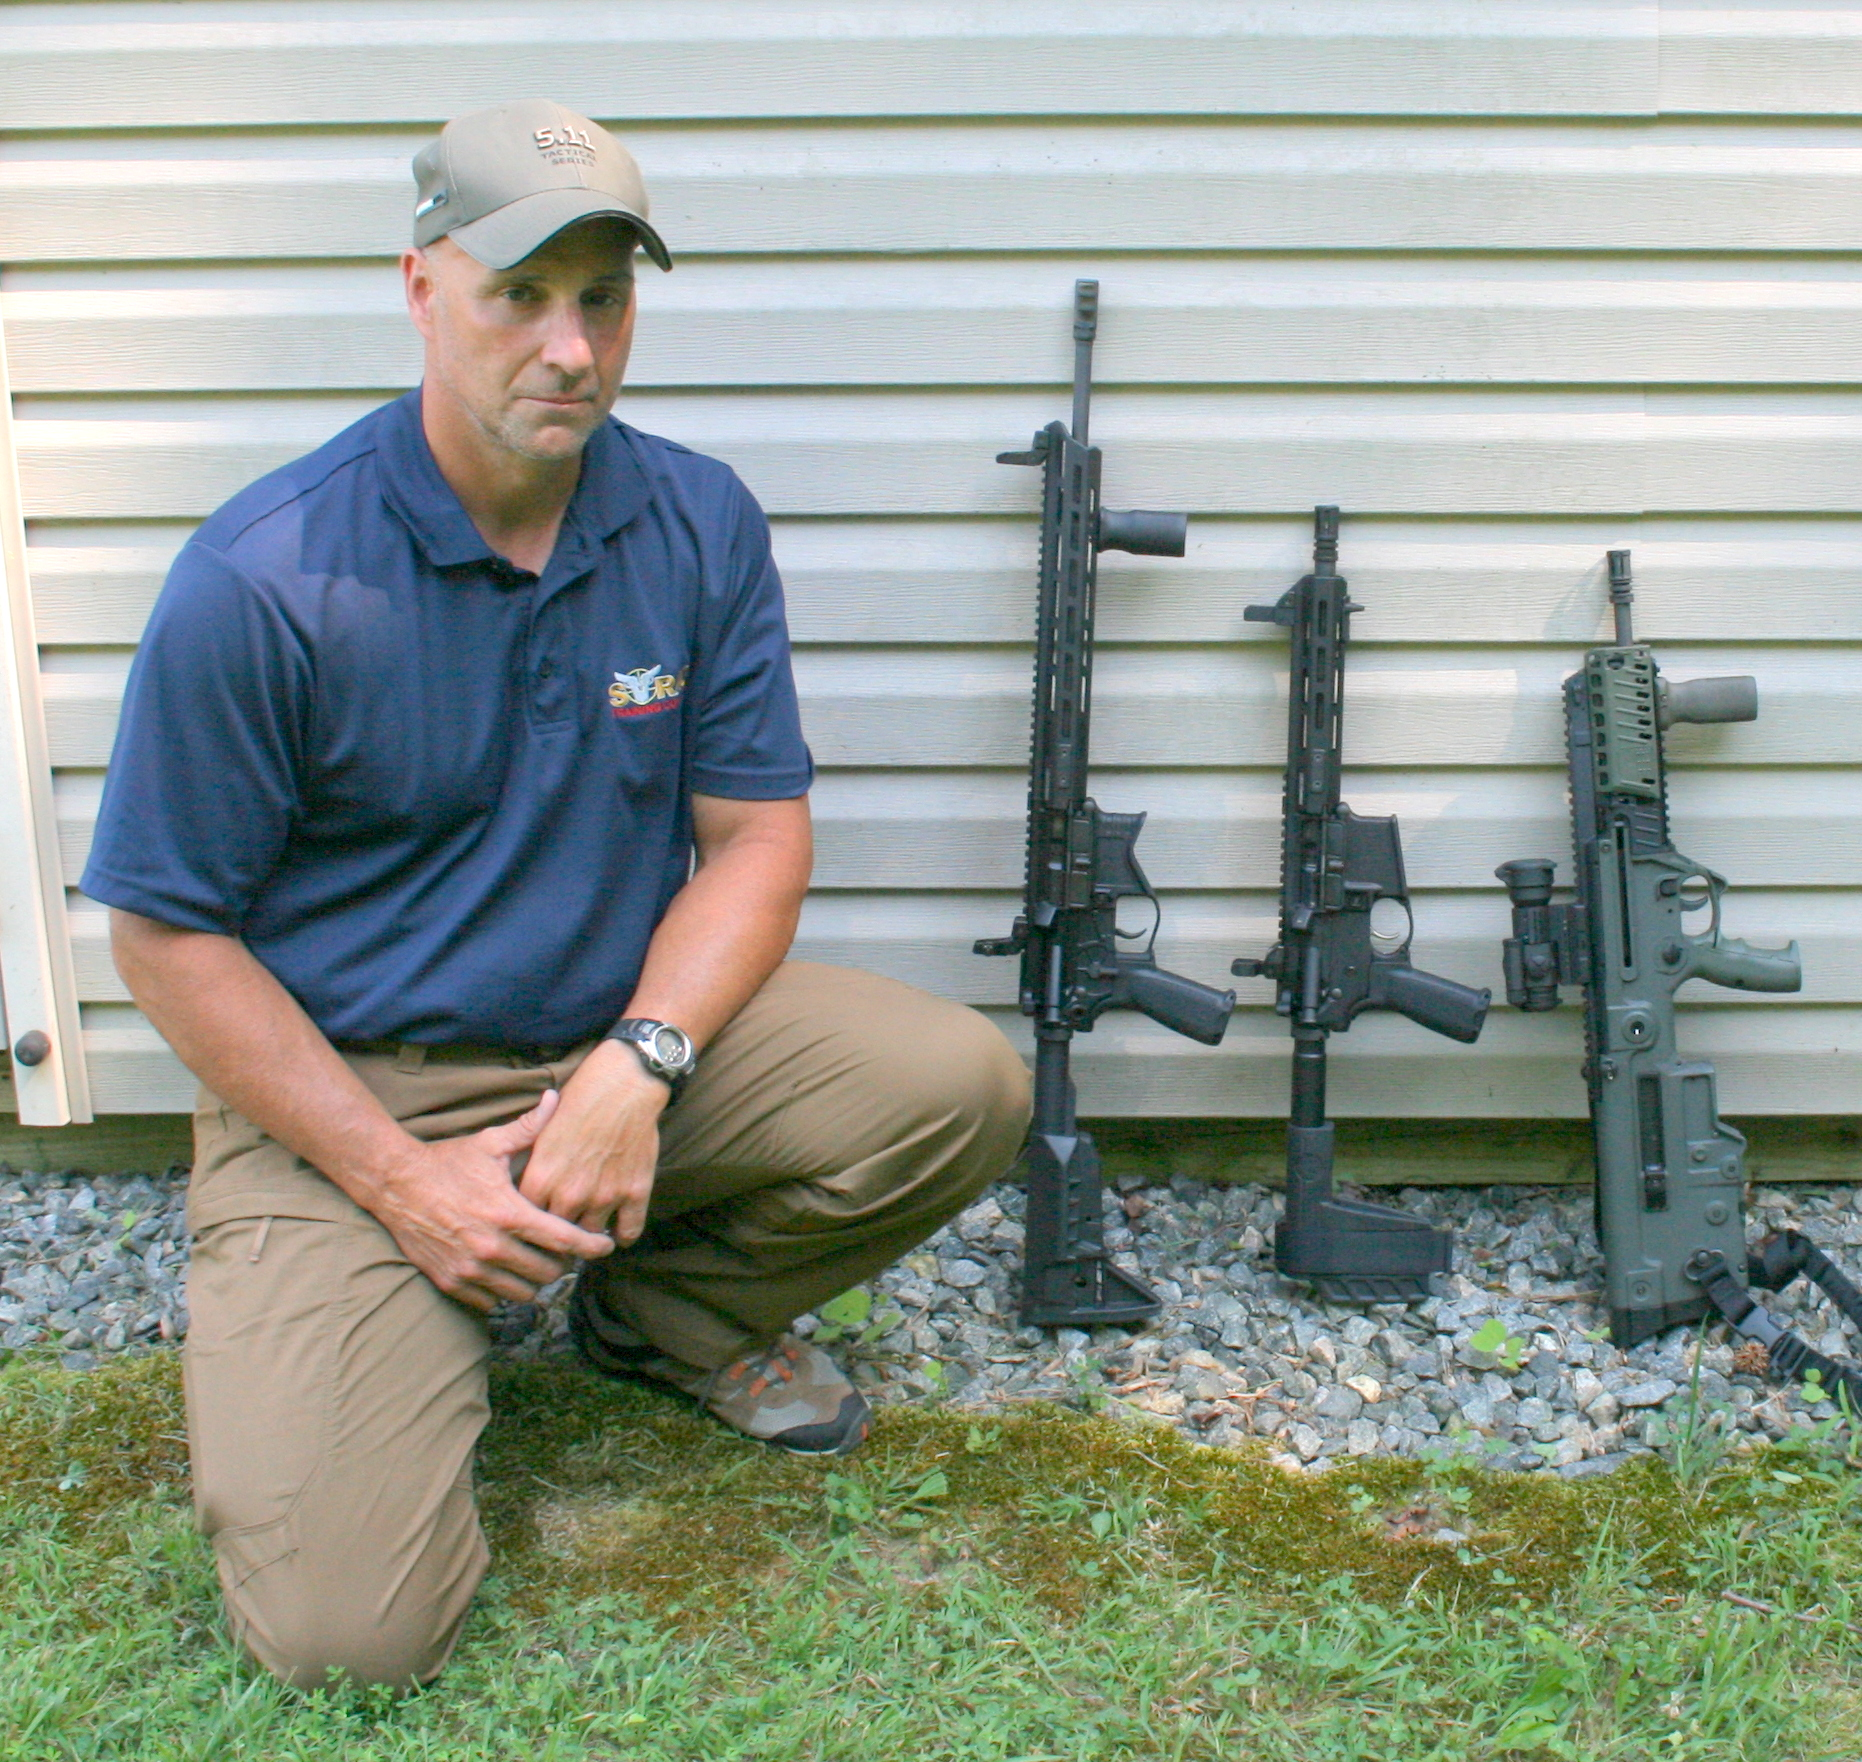 Former U.S. Air Marshal Ken Trice shows overall length differences among (left to right) 16-inch barrel SAINT AR rifle, nine-inch barrel SAINT .300 BLK pistol, and 16.5-inch barrel Tavor X95 Bullpup rifle. Bullpup would solve subcompact rifle's loss of muzzle velocity, reduction in engagement range, and terminal effectiveness while retaining high degree of maneuverability at close quarters.